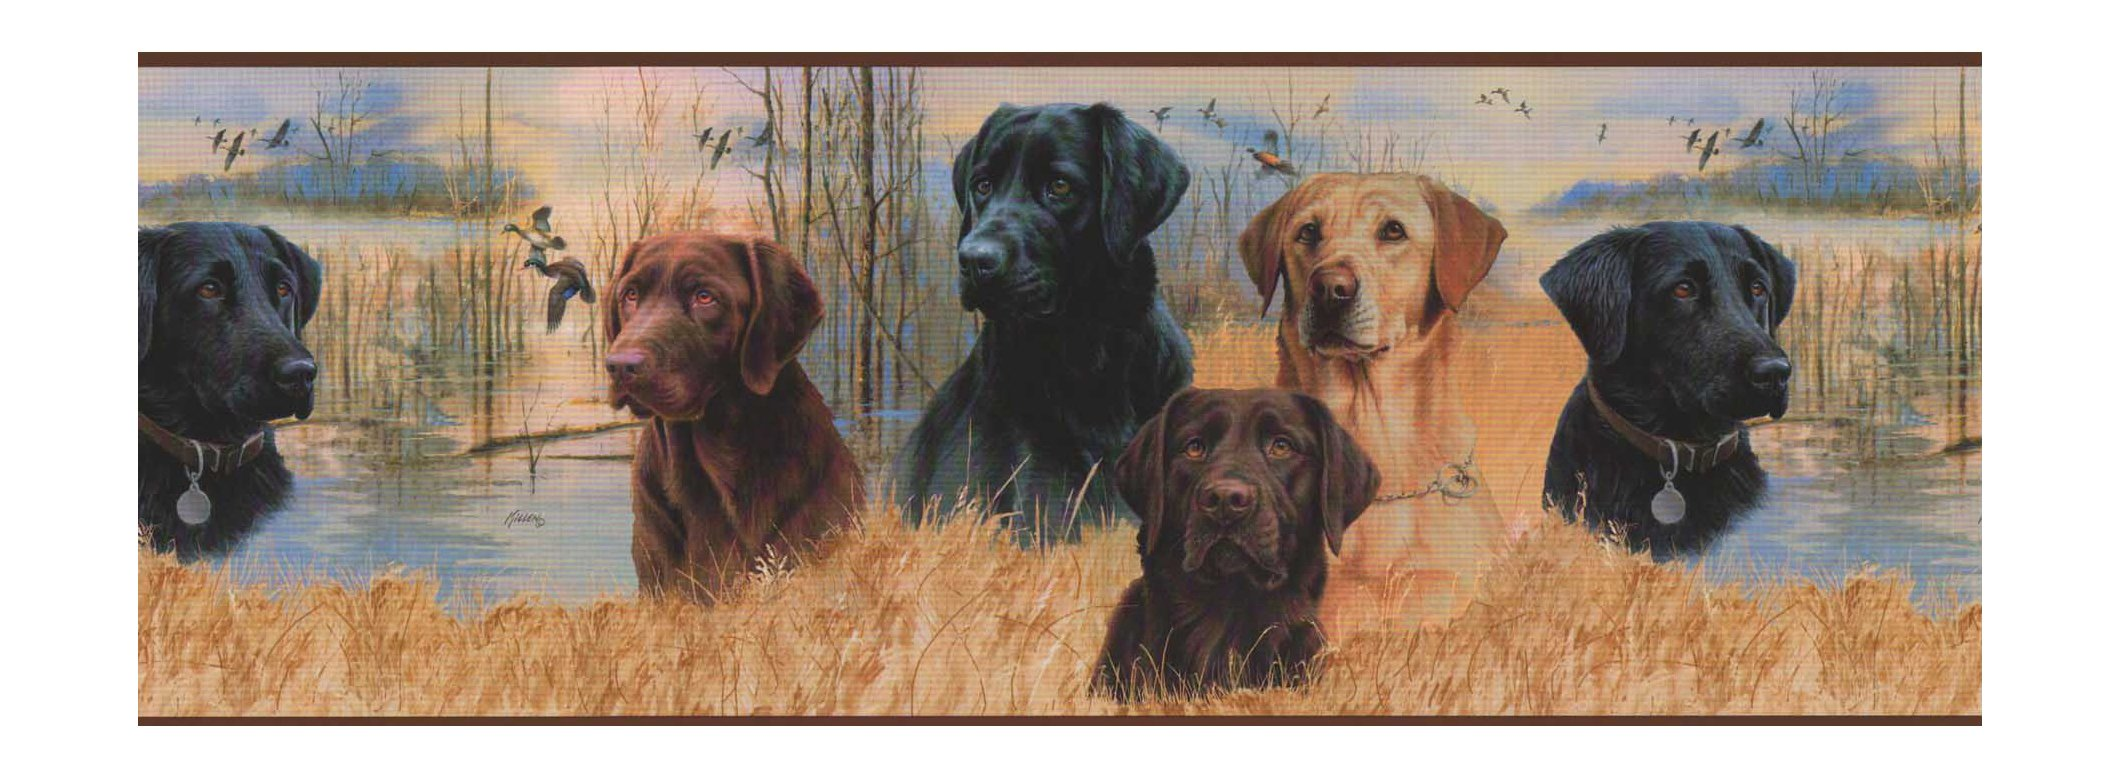 York Wallcoverings Lake Forest Lodge NM6000B Working Dogs Border, Multi/Brown Band